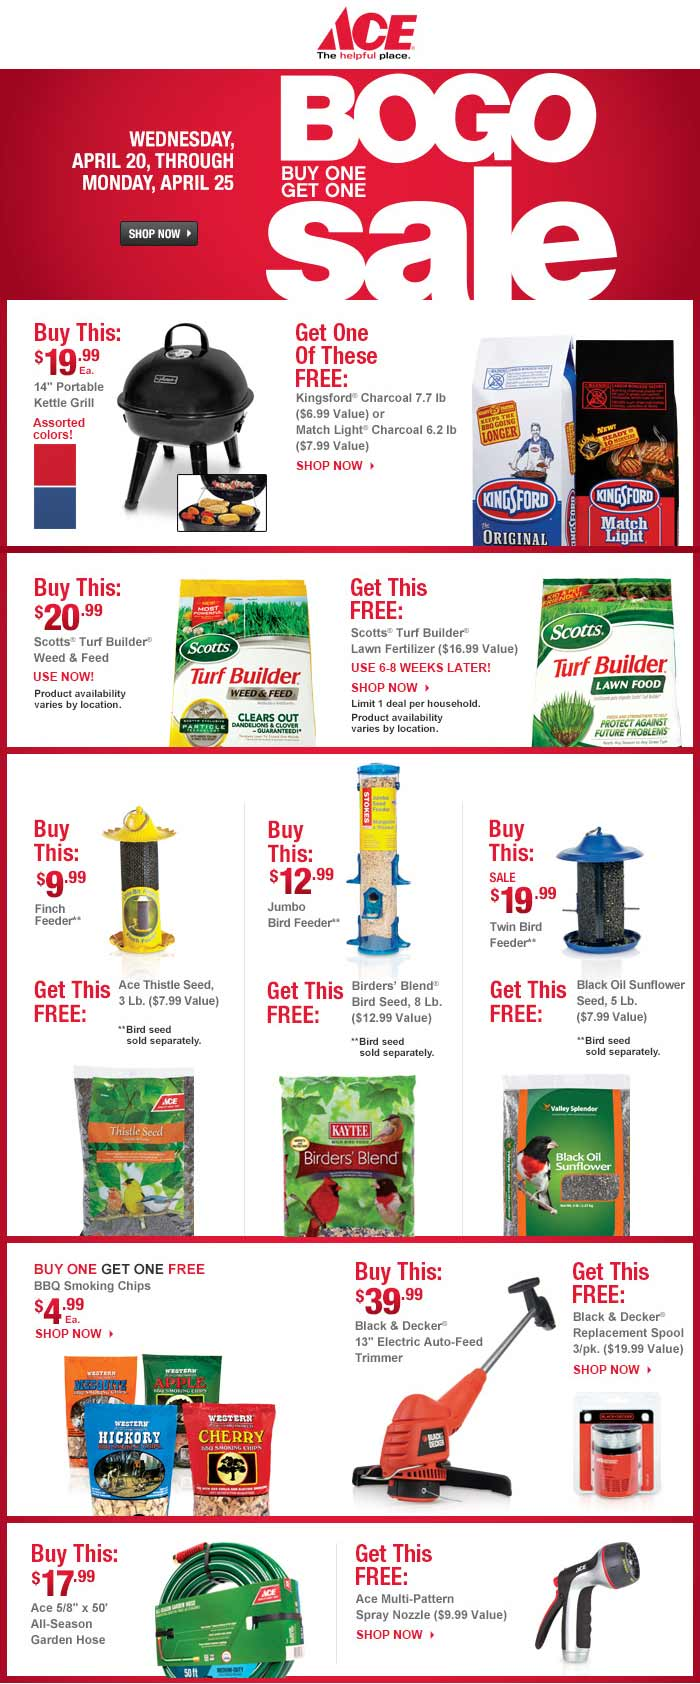 Ace Hardware Coupon September 2018 Spring bogo sale going on in-store & online at Ace Hardware